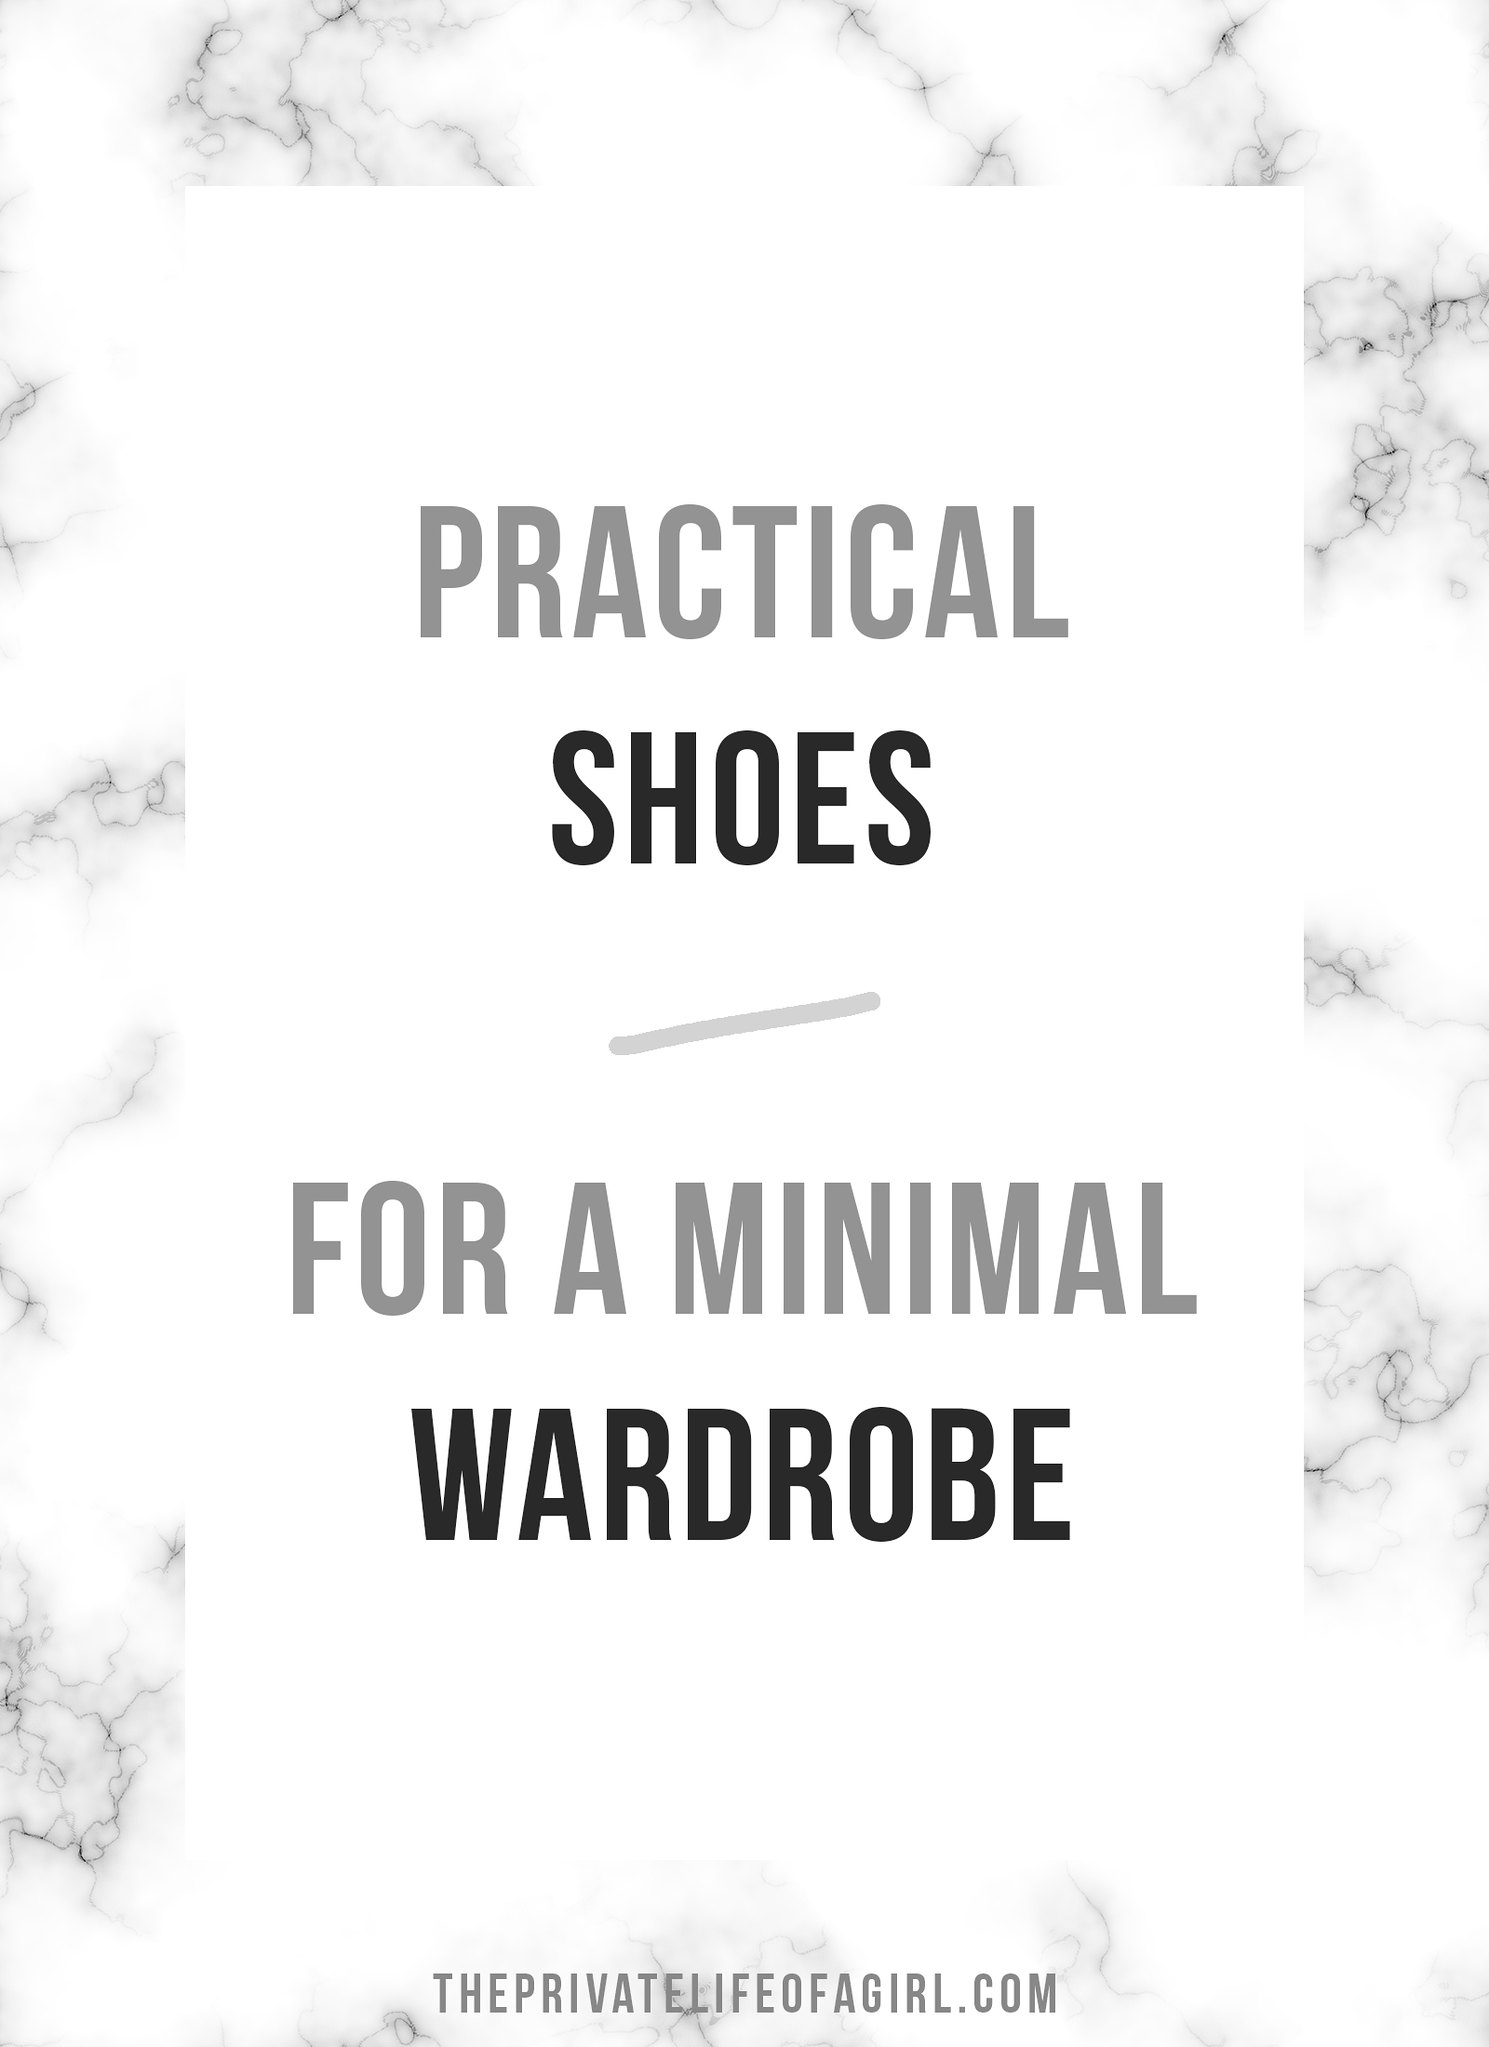 Practical Shoes for a Minimal Wardrobe